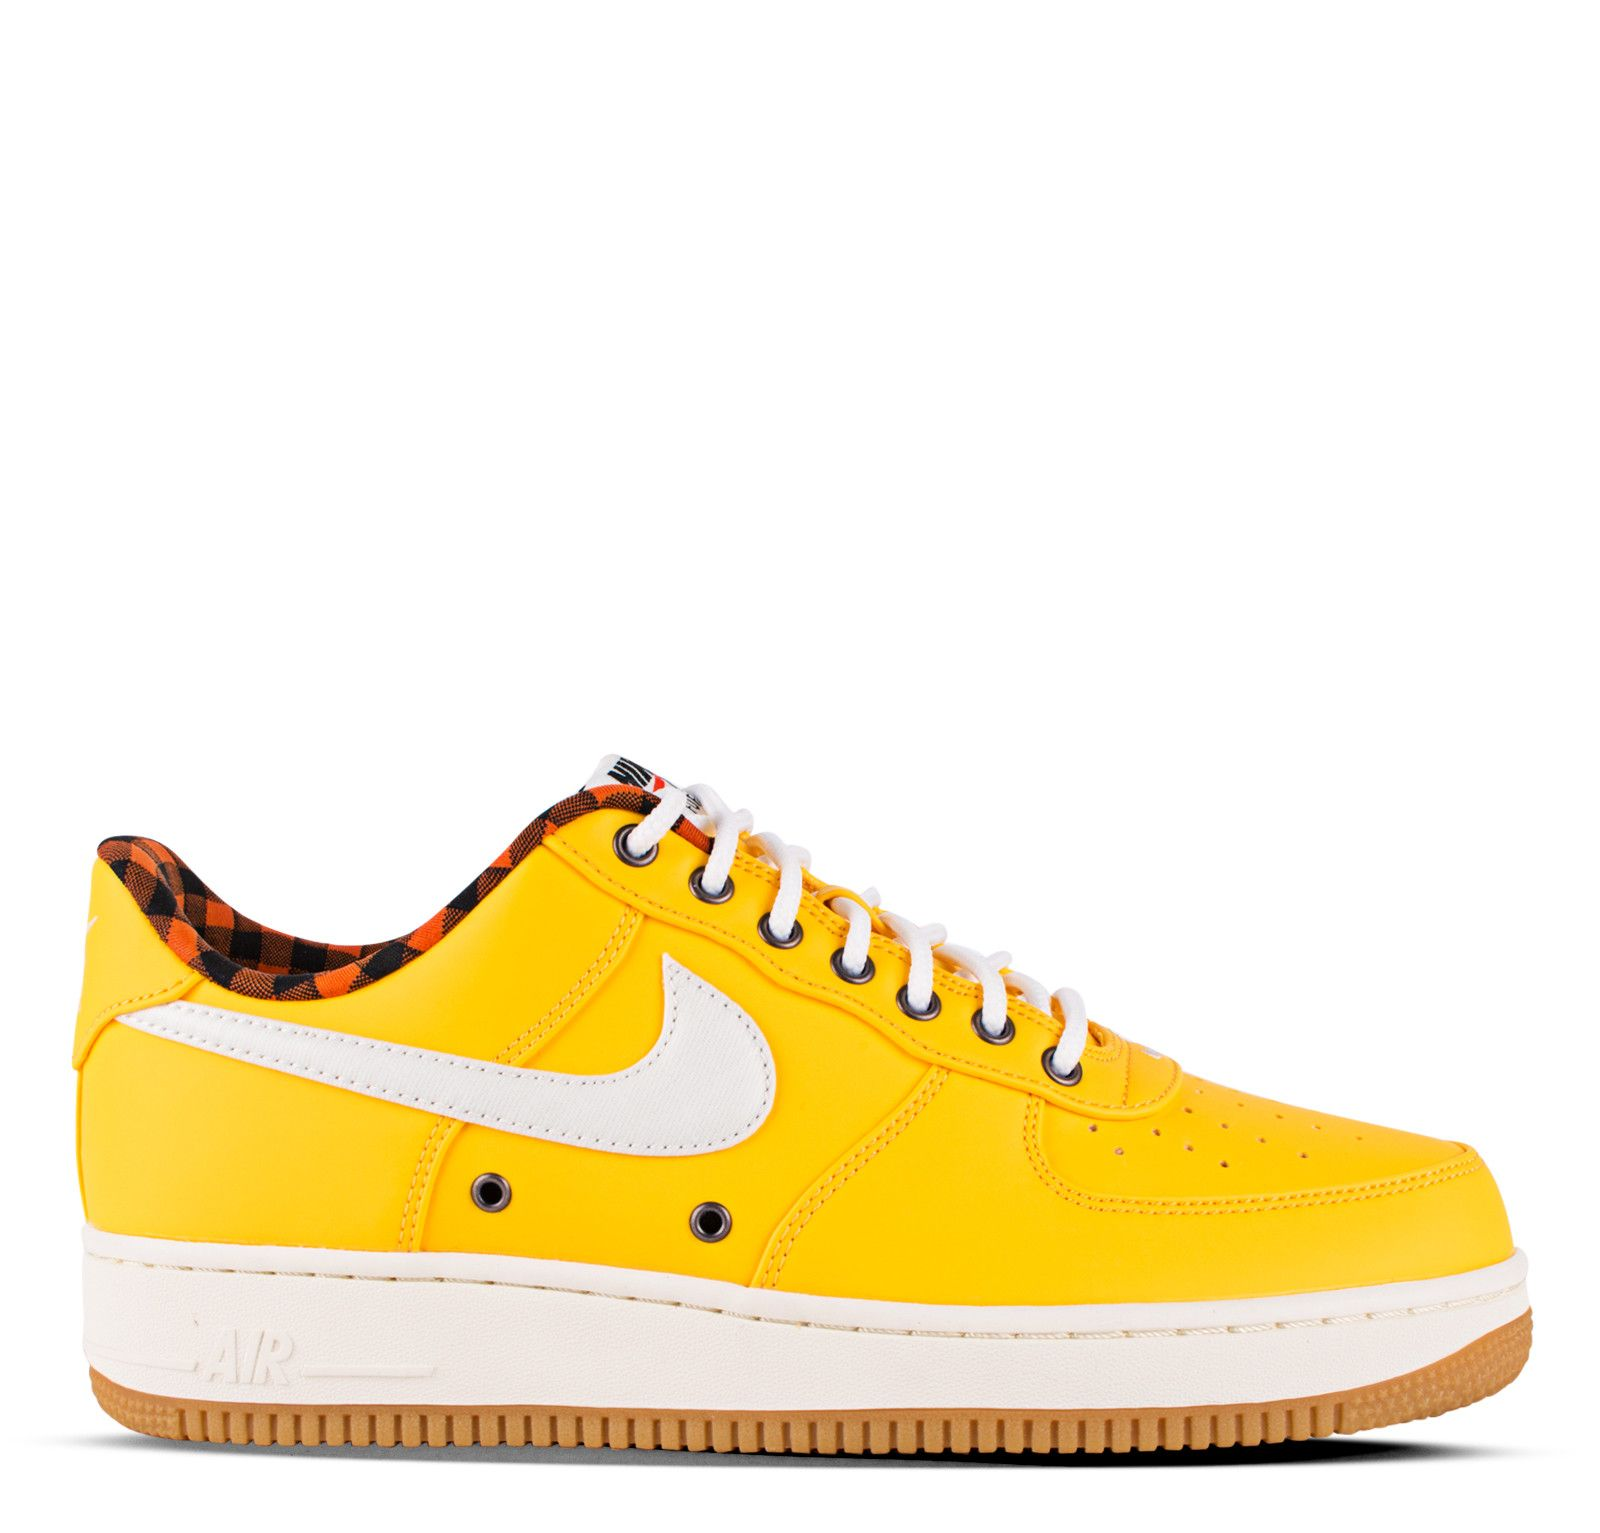 Nike Air Force 1 Maíz High 07 Lv8 Varsity Maíz 1 Vela Safety Orange 03587d